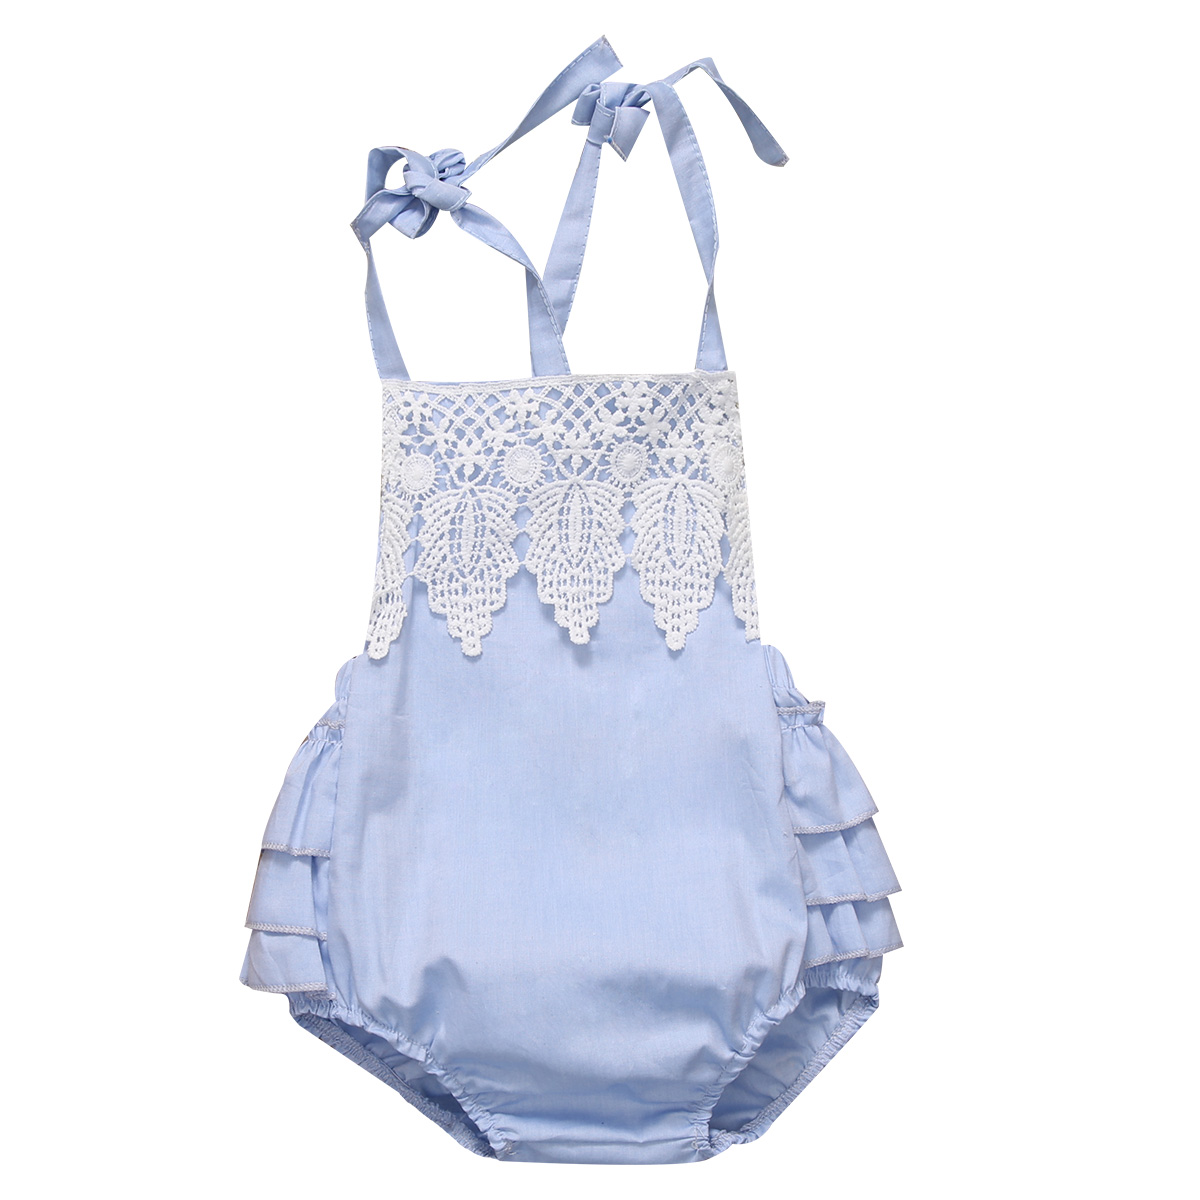 Helen115 Lovely Newborn Baby Girls Blue Flower Sleeveless Leak Back Cotton Bodysuit 0-24M